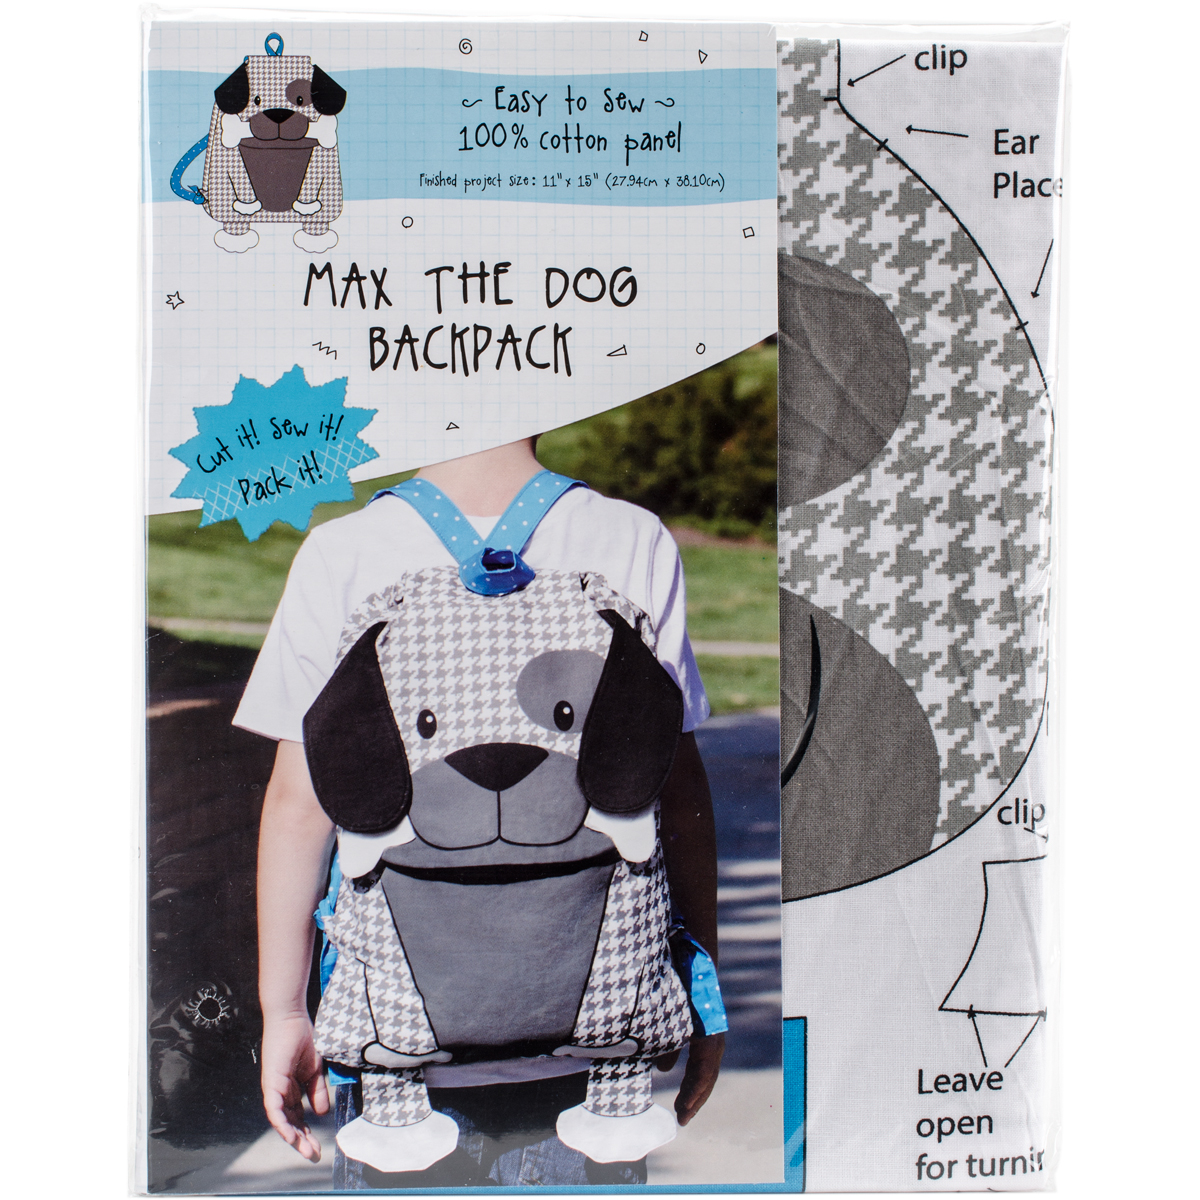 Max The Dog Animal Backpack On Preprinted Fabric-